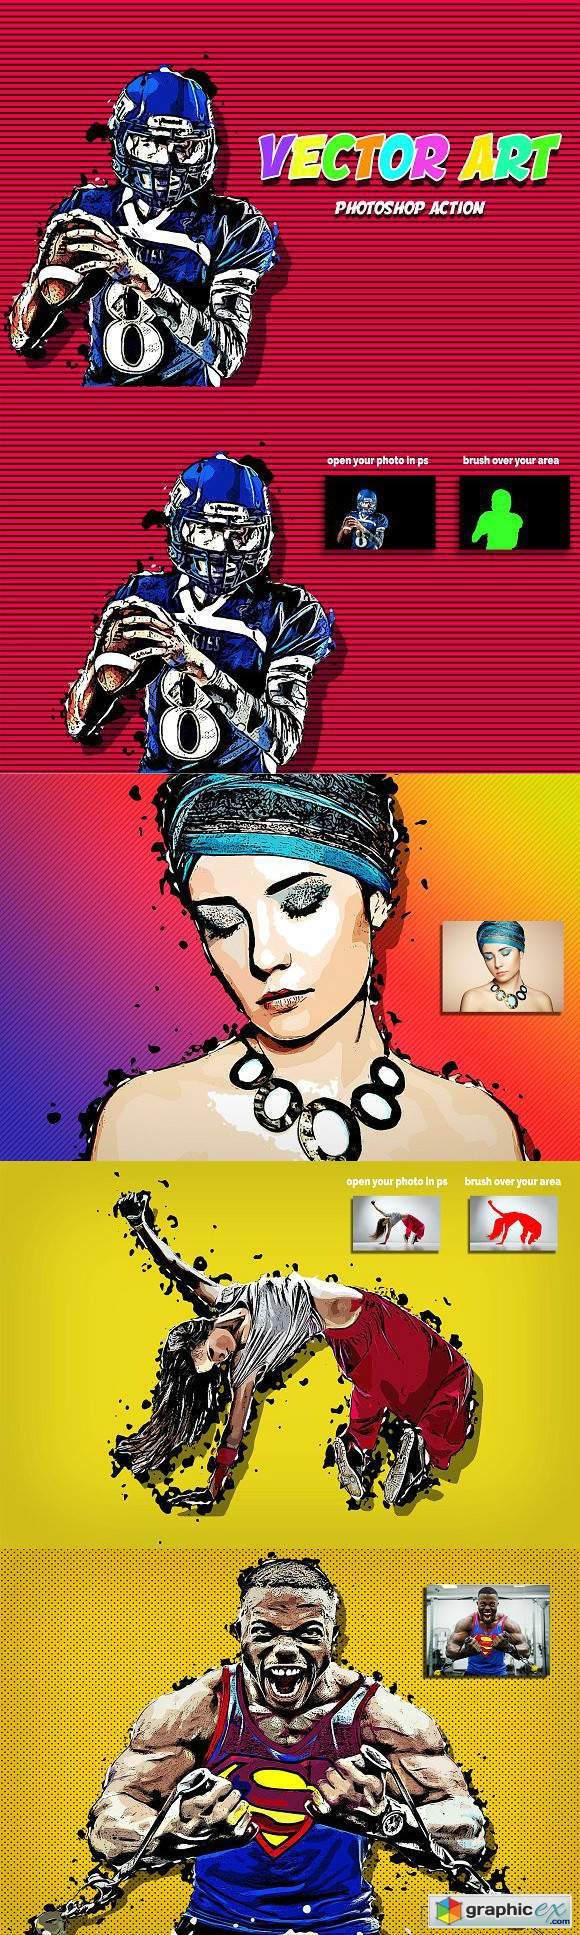 Vector Art Photoshop Action 3070947